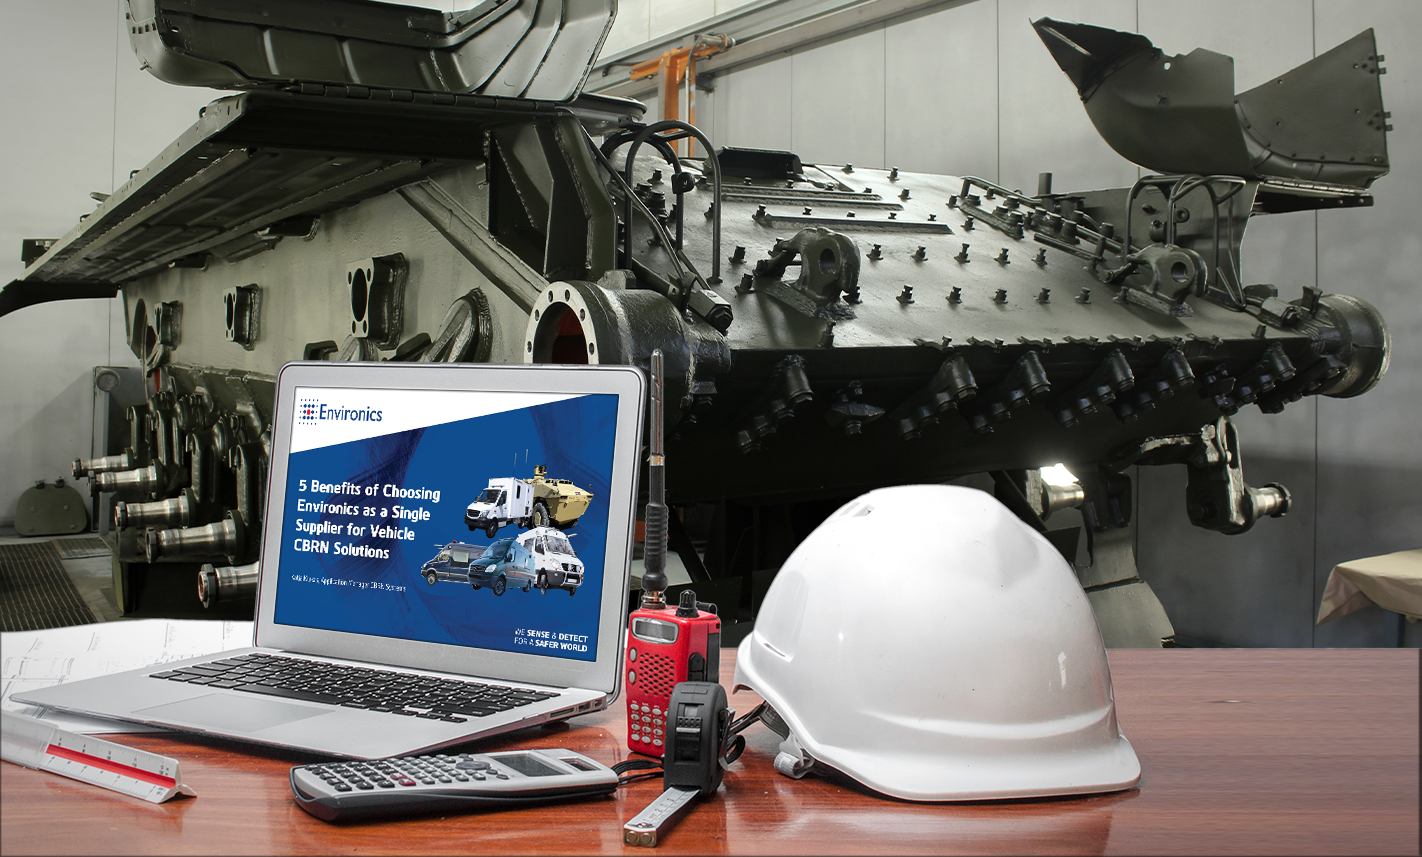 5 Benefits of Choosing Environics as a Single Supplier for Vehicle CBRN Solutions